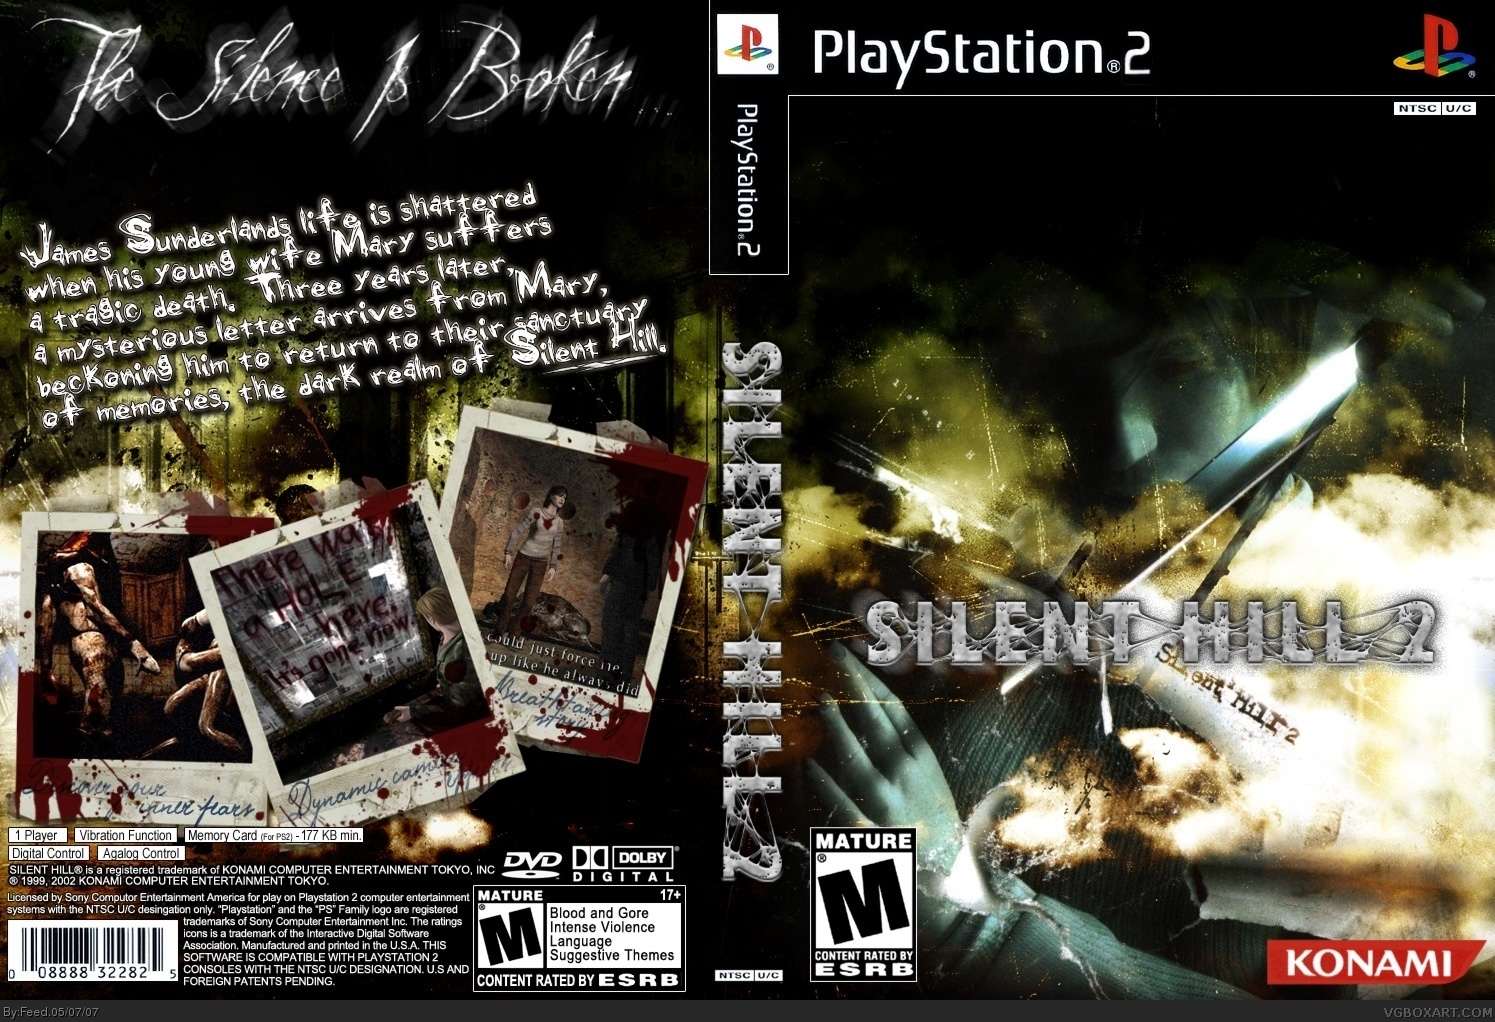 Silent Hill 2 Playstation 2 Box Art Cover By Feed